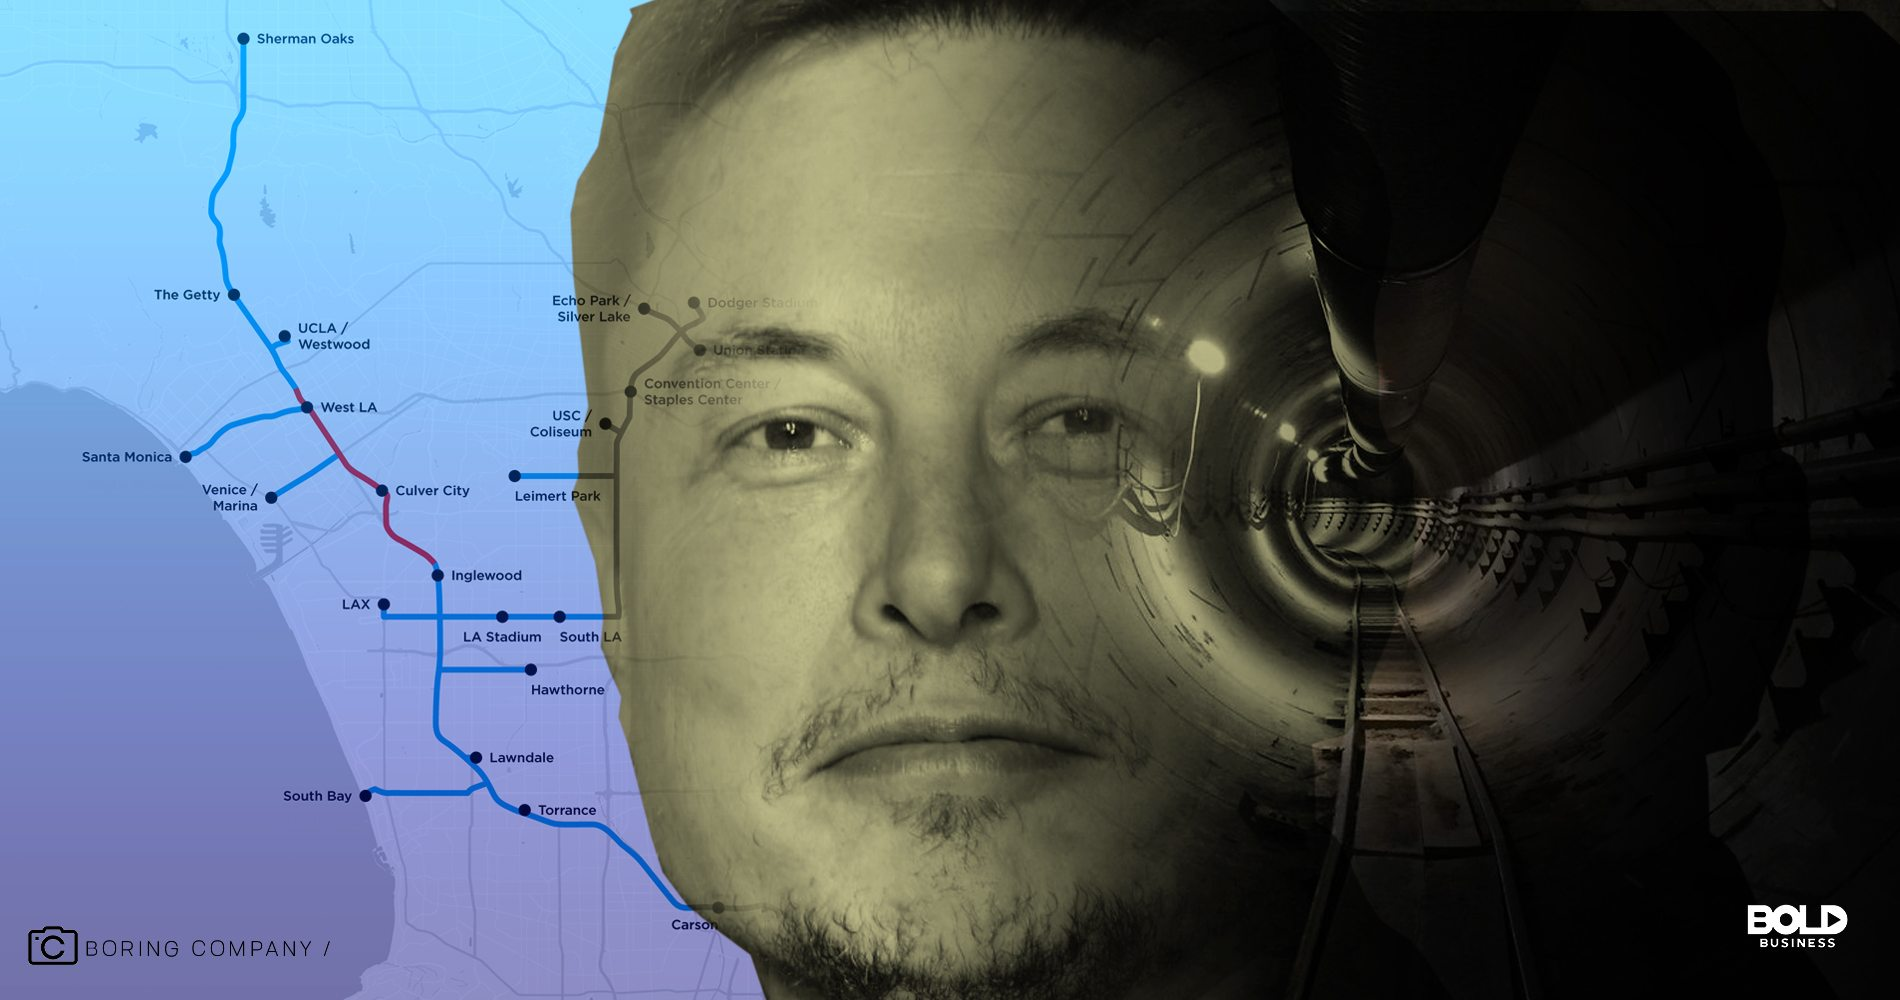 Elon Musk's proposed underground tunnel map